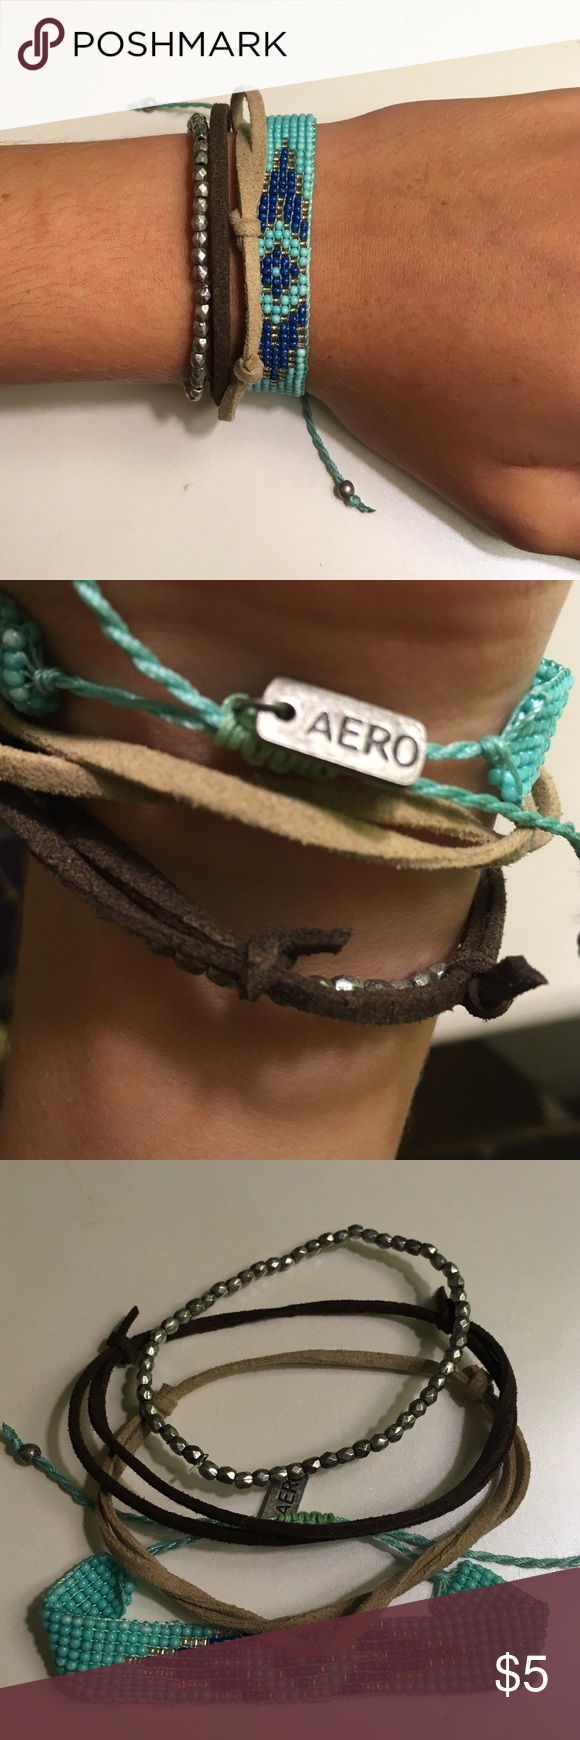 Aero bracelet set There are 4 bracelets that go together and are all adjustable. Hardly worn, perfect condition. Aeropostale Jewelry Bracelets